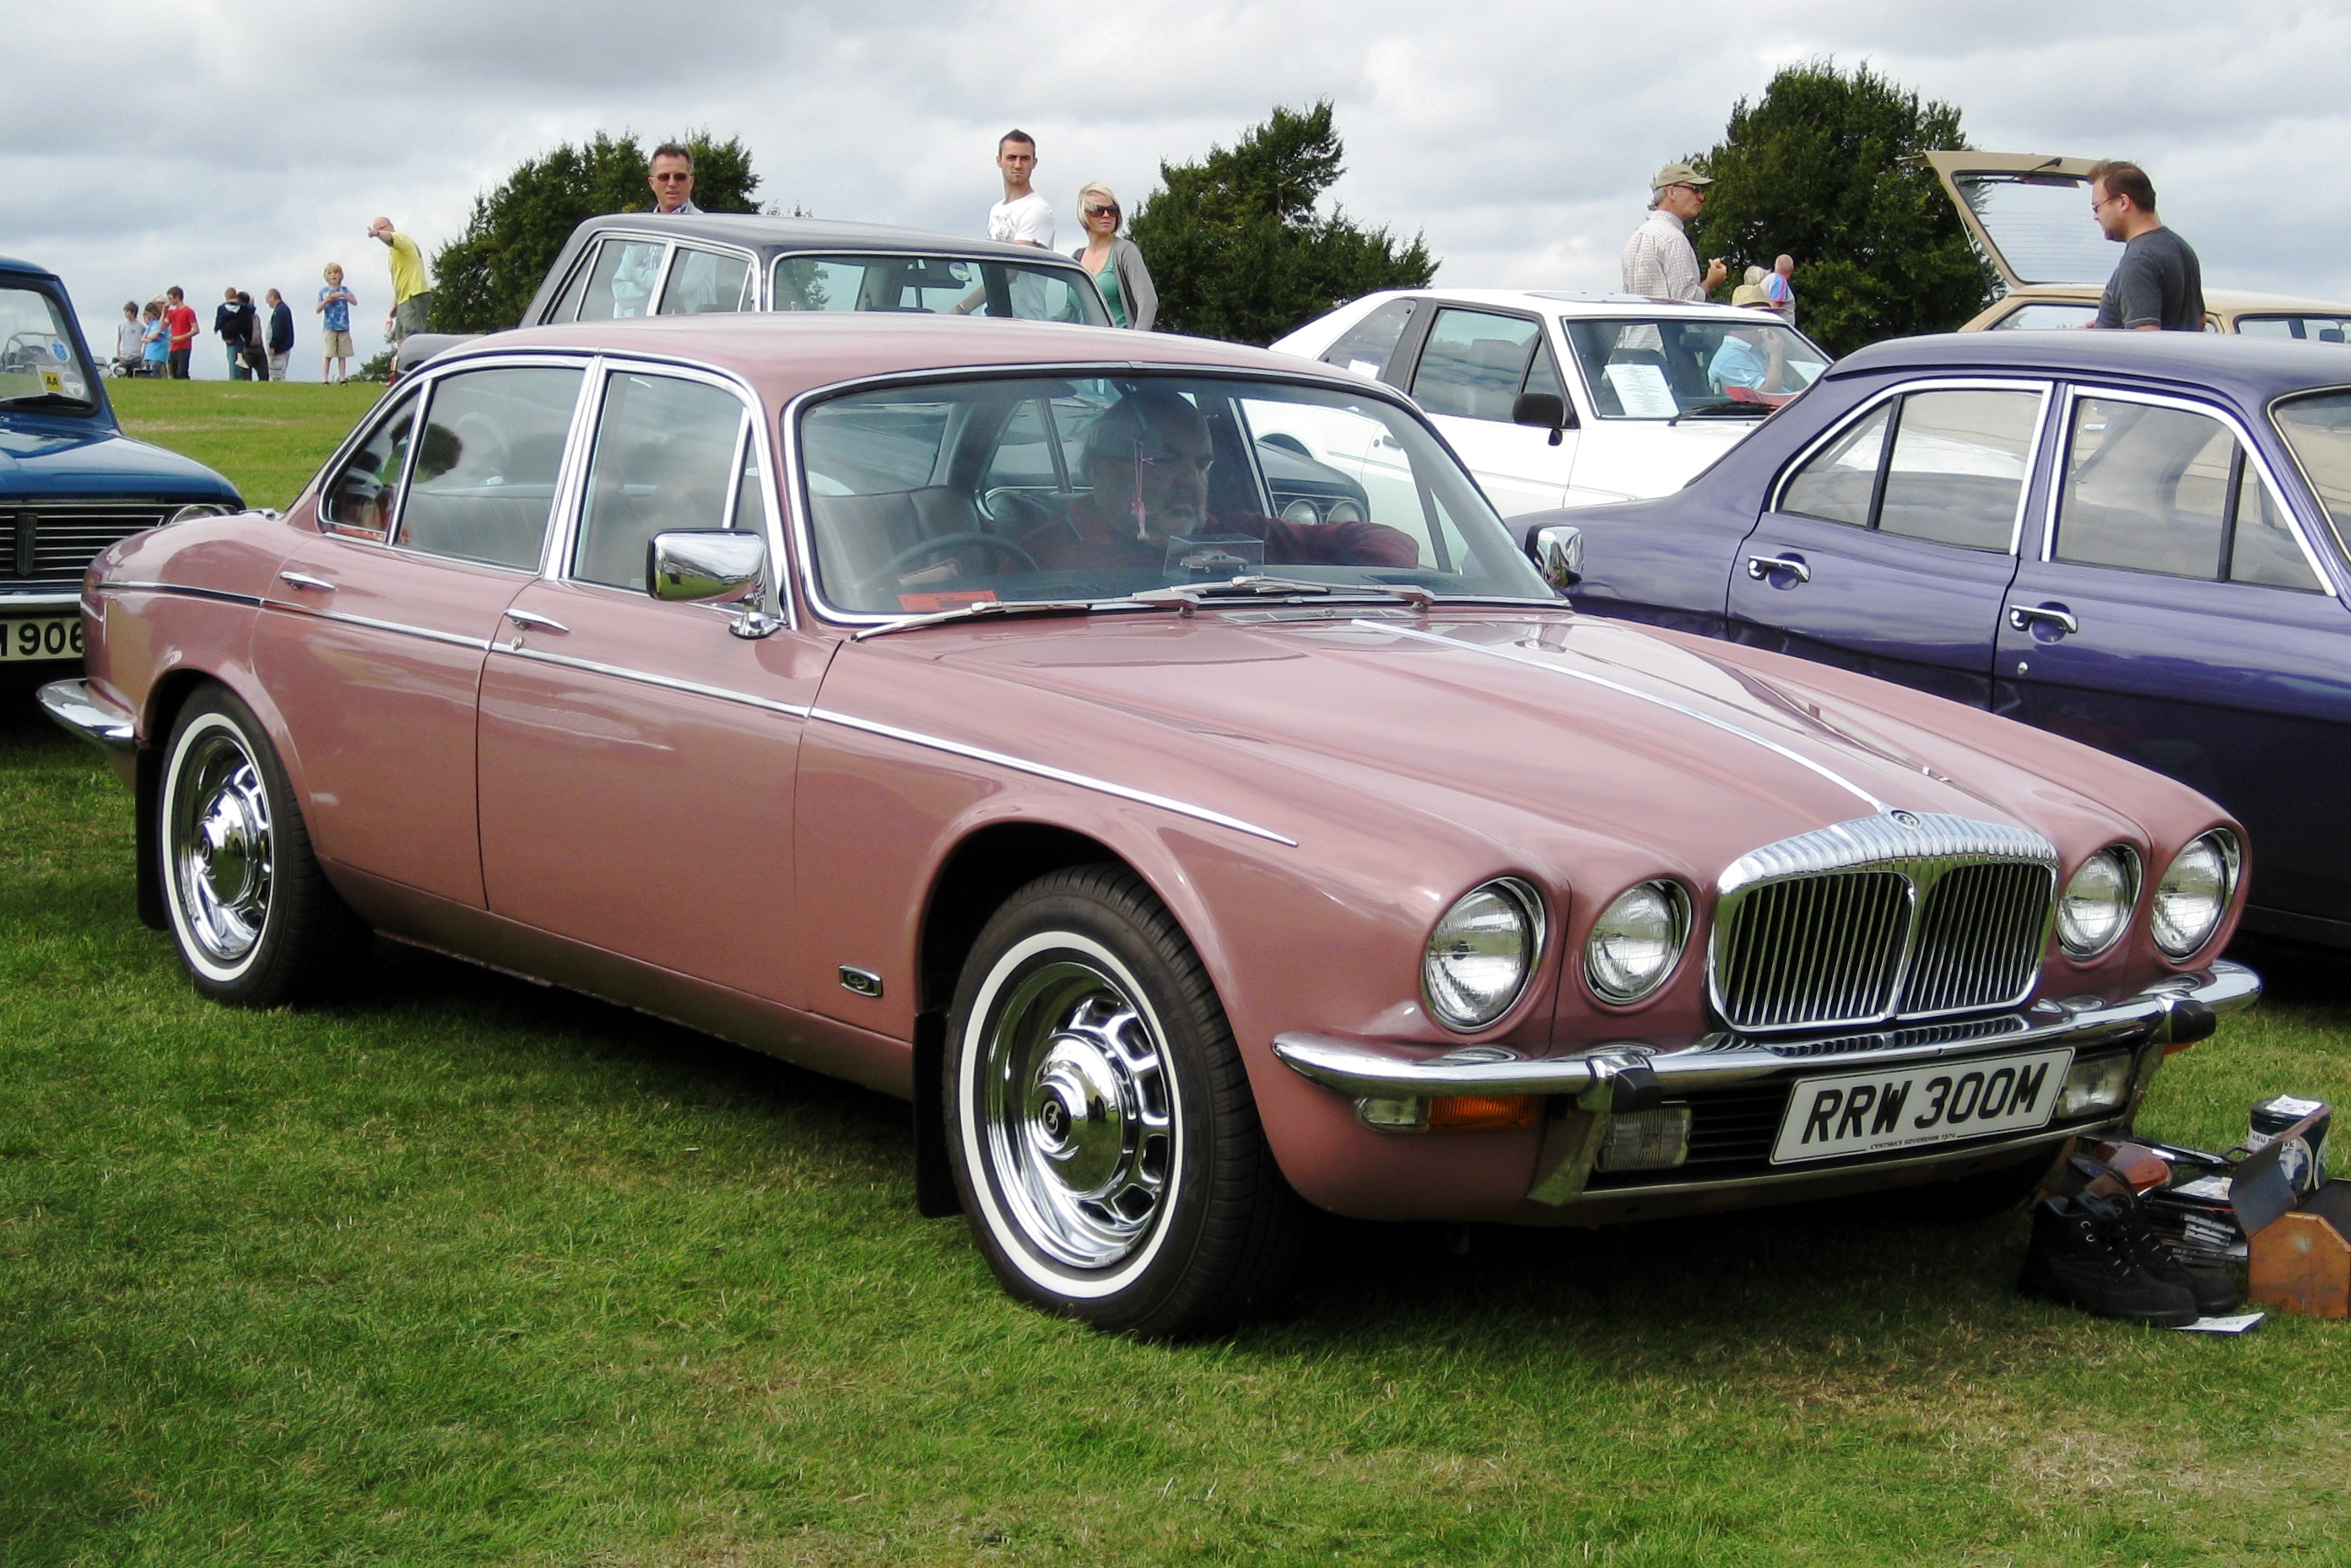 1995 Jaguar Xj Series Pictures C5633 pi35649213 moreover File Daimler Sovereign based on XJ6 Series II 4325cc first registered March 1974 additionally 27919 1987 cadillac brougham base sedan 4   door 5   0l together with Power Locks Trunk Top Gas Tank Door Dont Work 88232 in addition 1999 Jaguar Xj8 4 0 Motor Throttle Body Surrounding Area 120299. on jaguar xj6 engine diagram